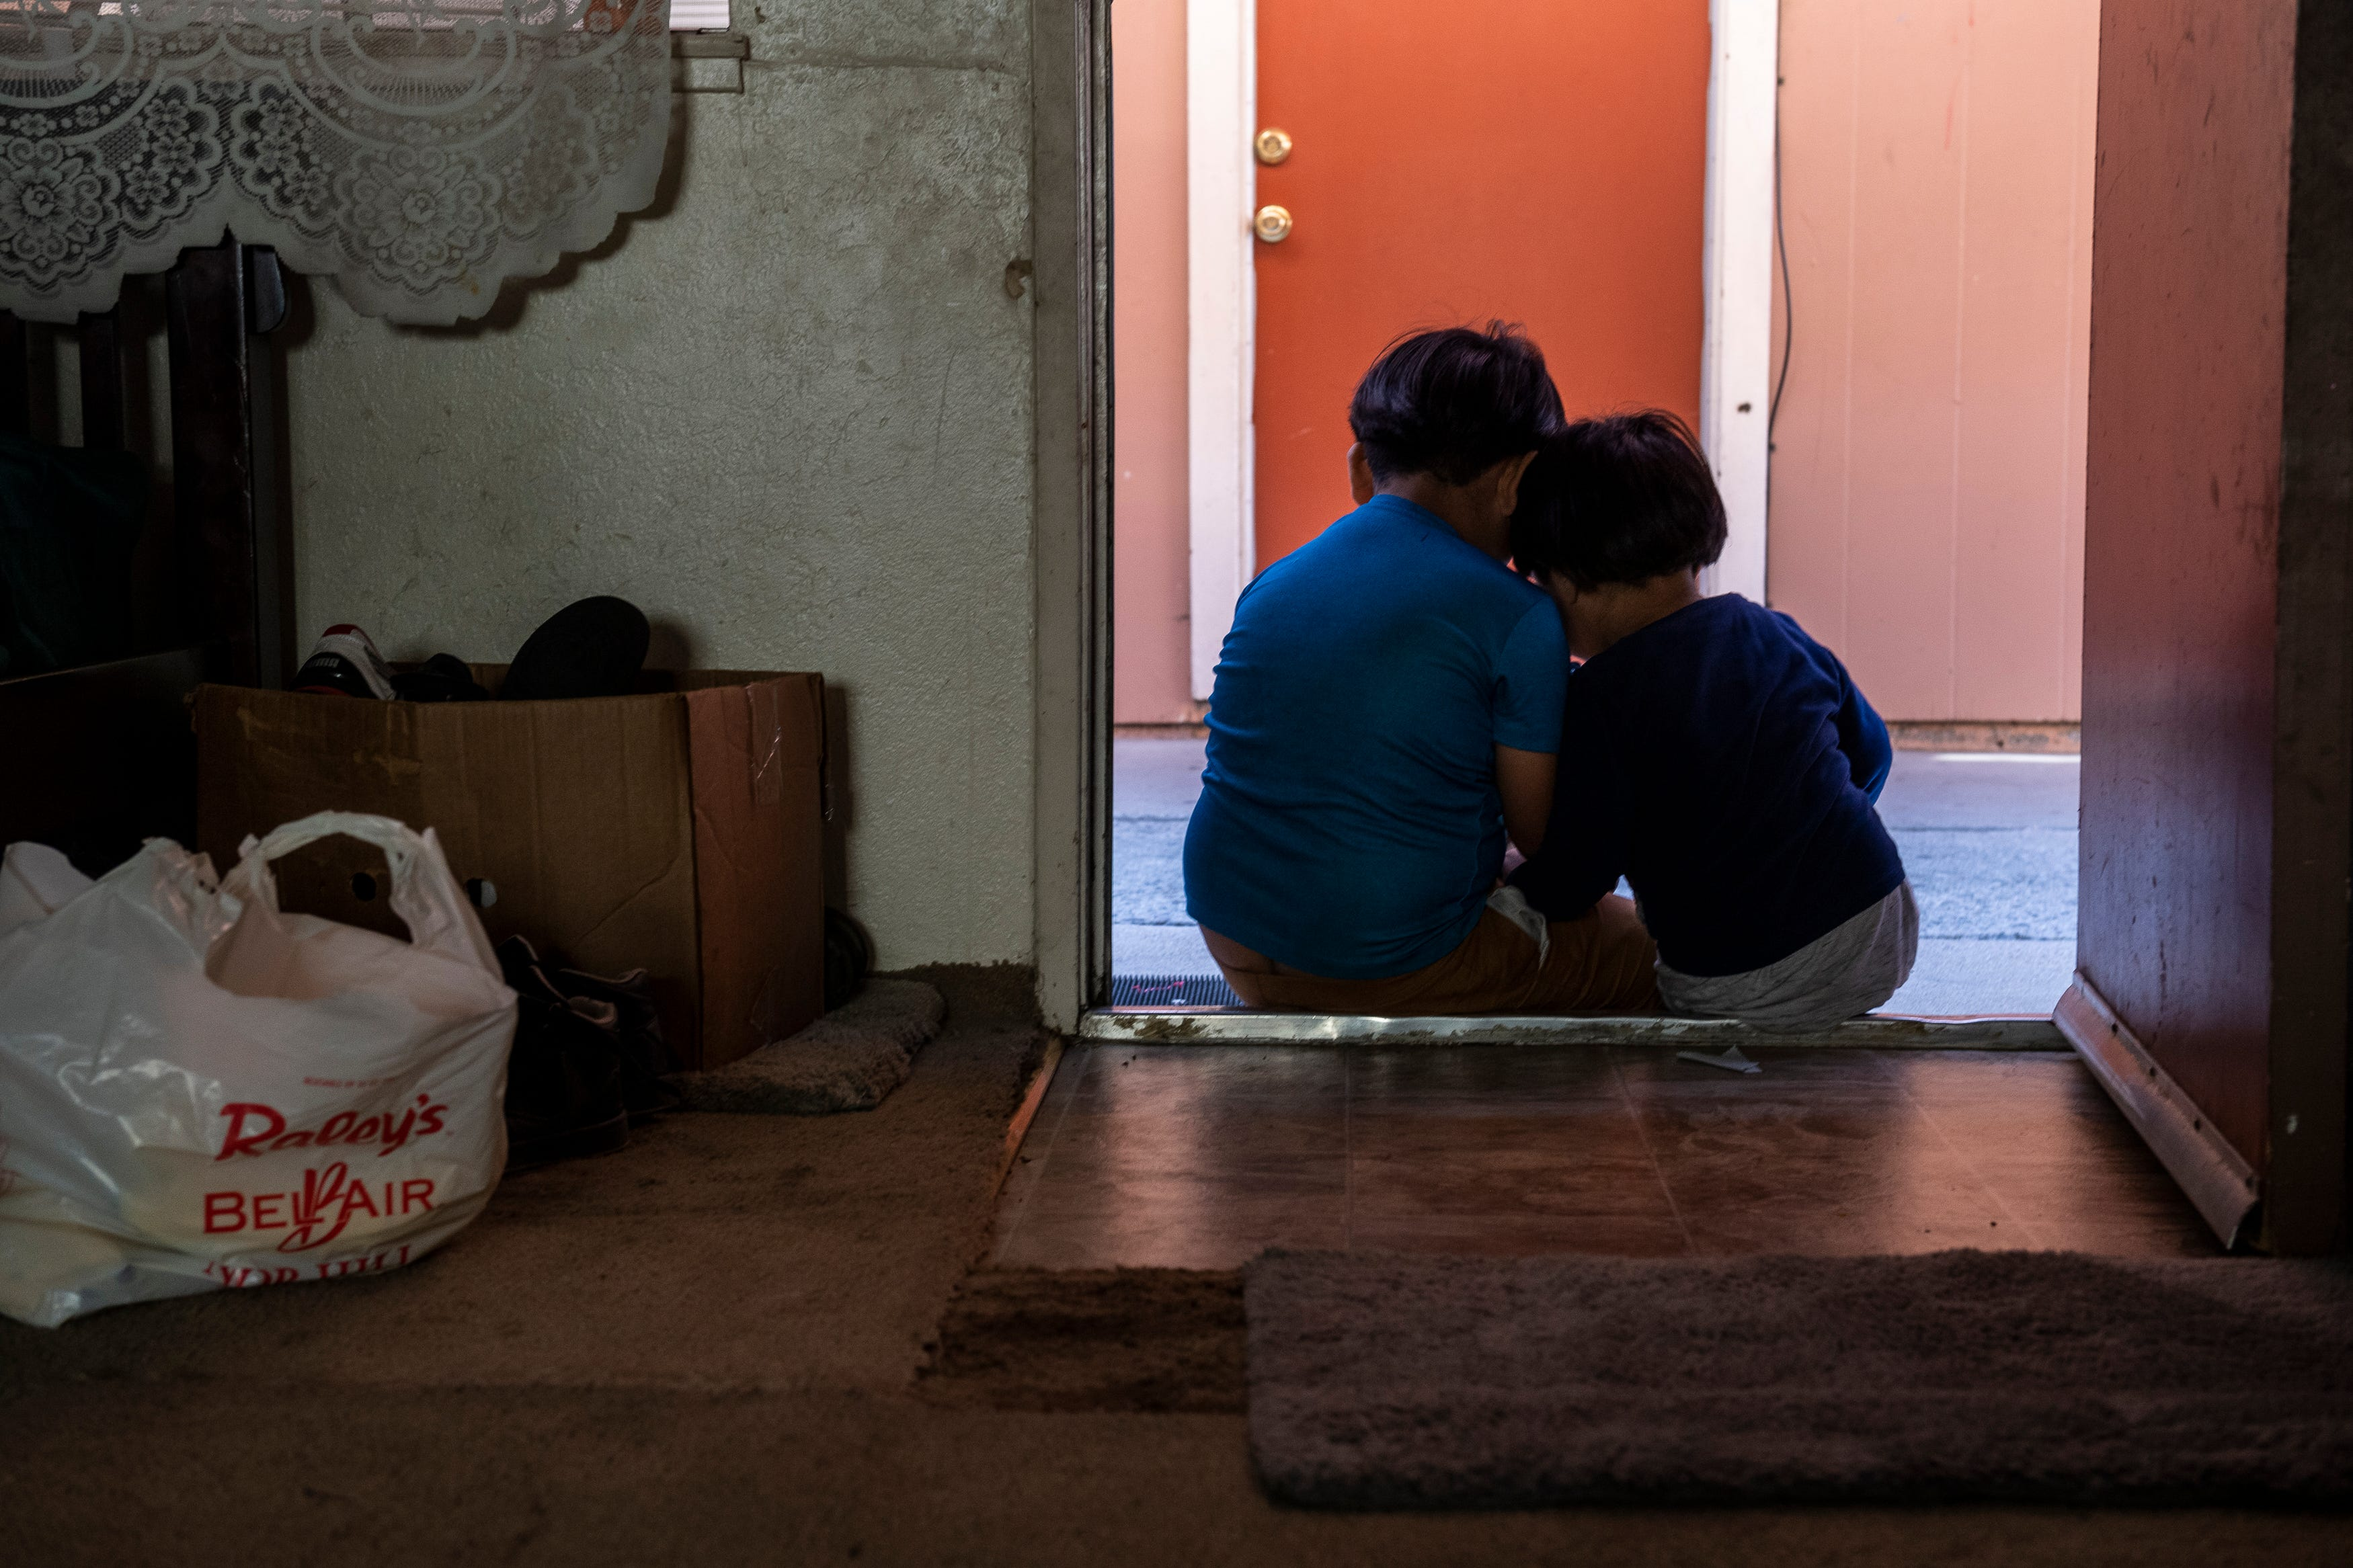 Hugo Salvador, 7, left, sits on a doorstep with his younger brother Jesus Salvador, 3, as they rest their heads on one another in Salinas, Calif., on Saturday, Sept. 26, 2020.